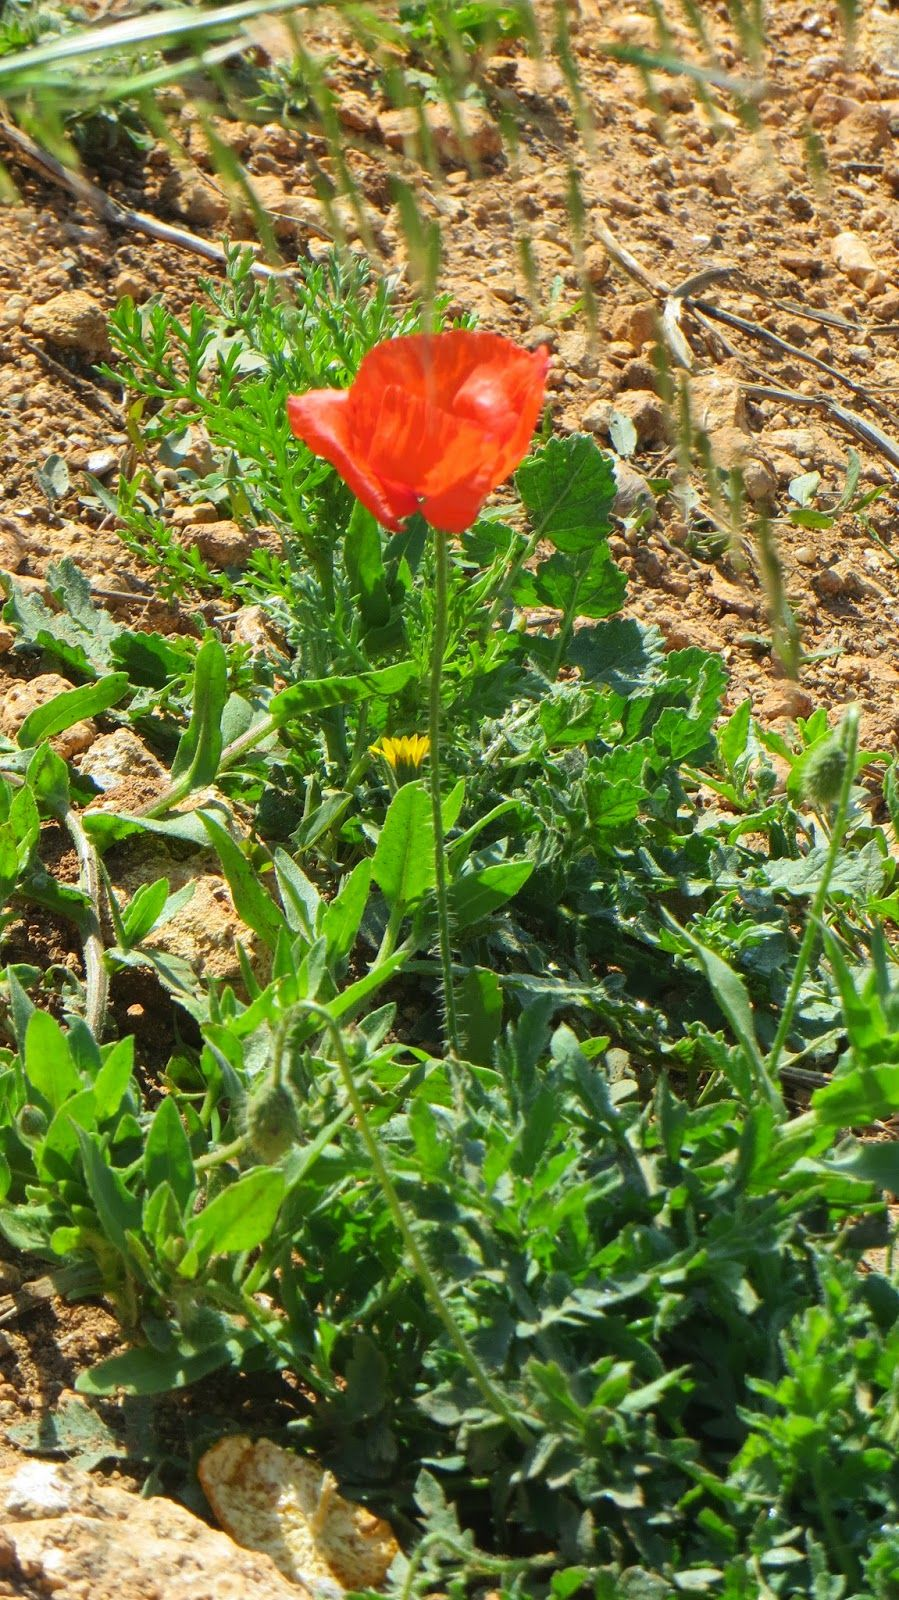 Aroma Treasures - Betty's Aromatic Adventures: Maltese Flora - The Red Poppy